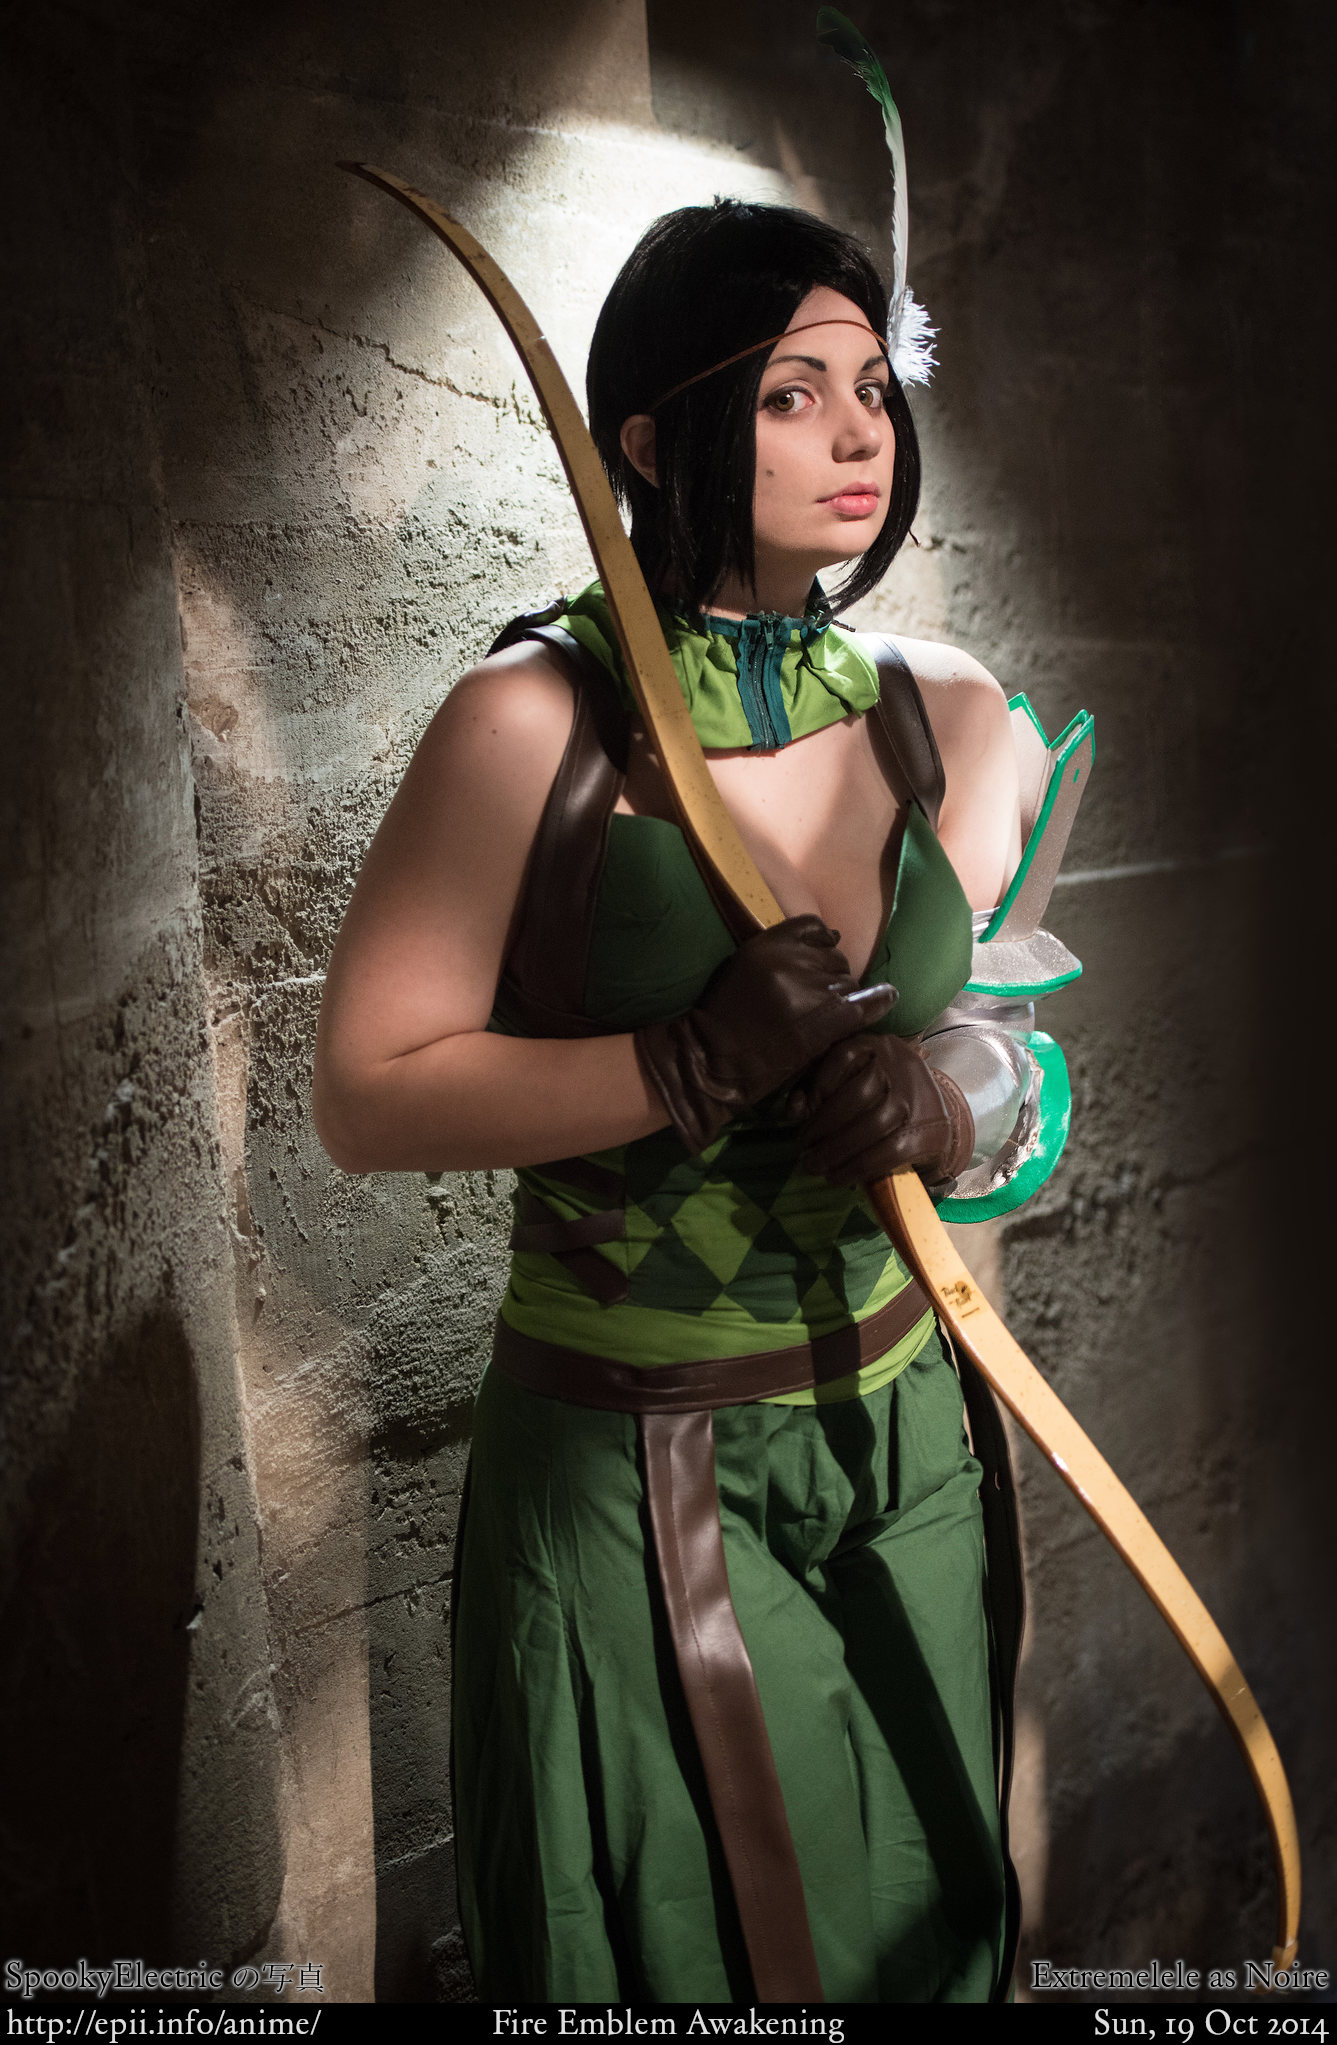 Les cosplay fire emblem - Page 16 1456019697-45465